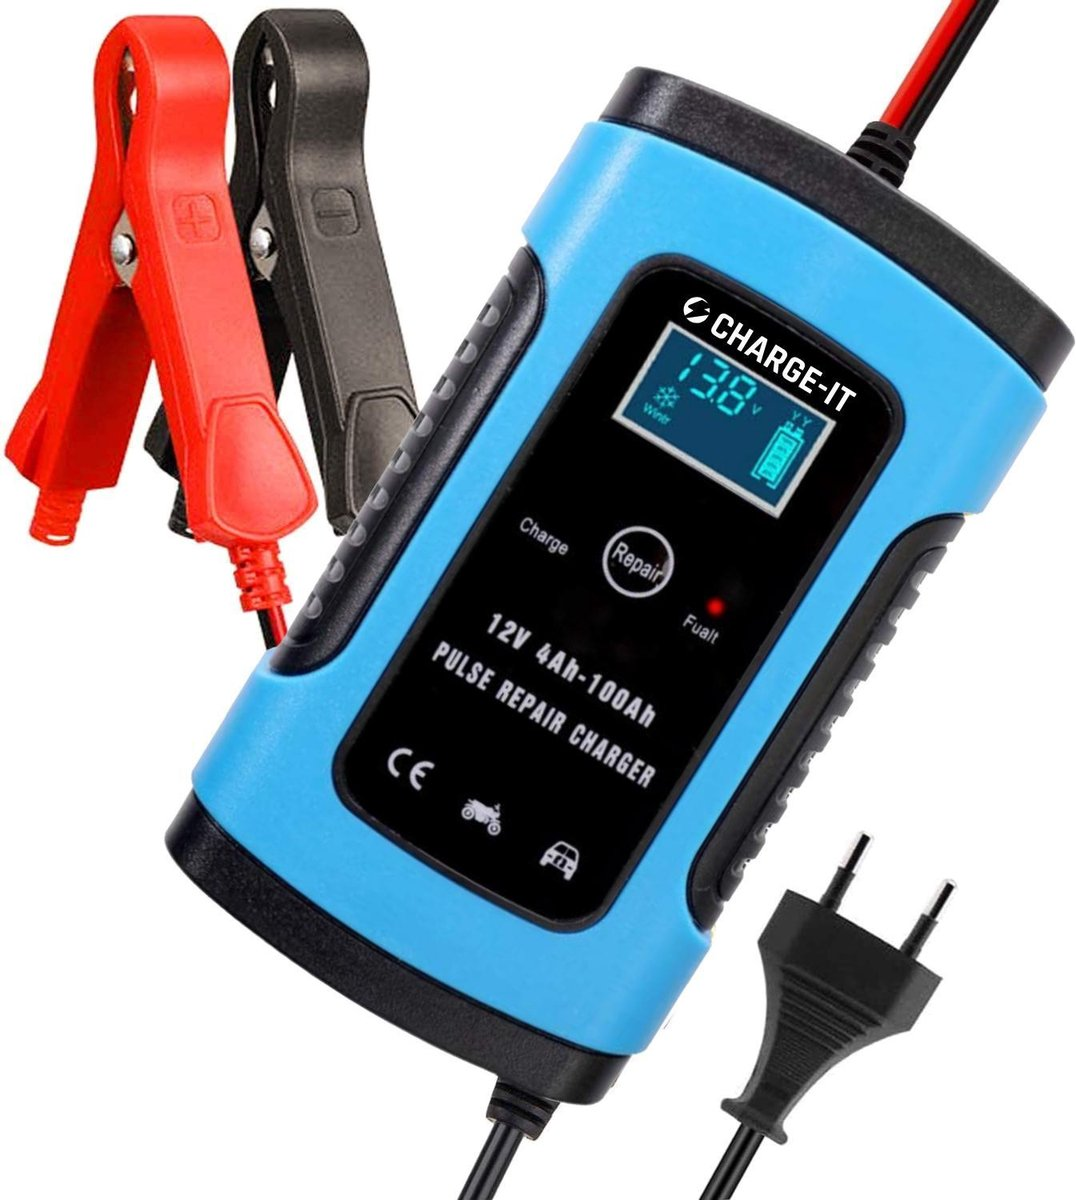 CHARGE-IT Acculader - Druppellader - Acculader voor Auto Motor Scooter Boot Camper - Reparatie Modus